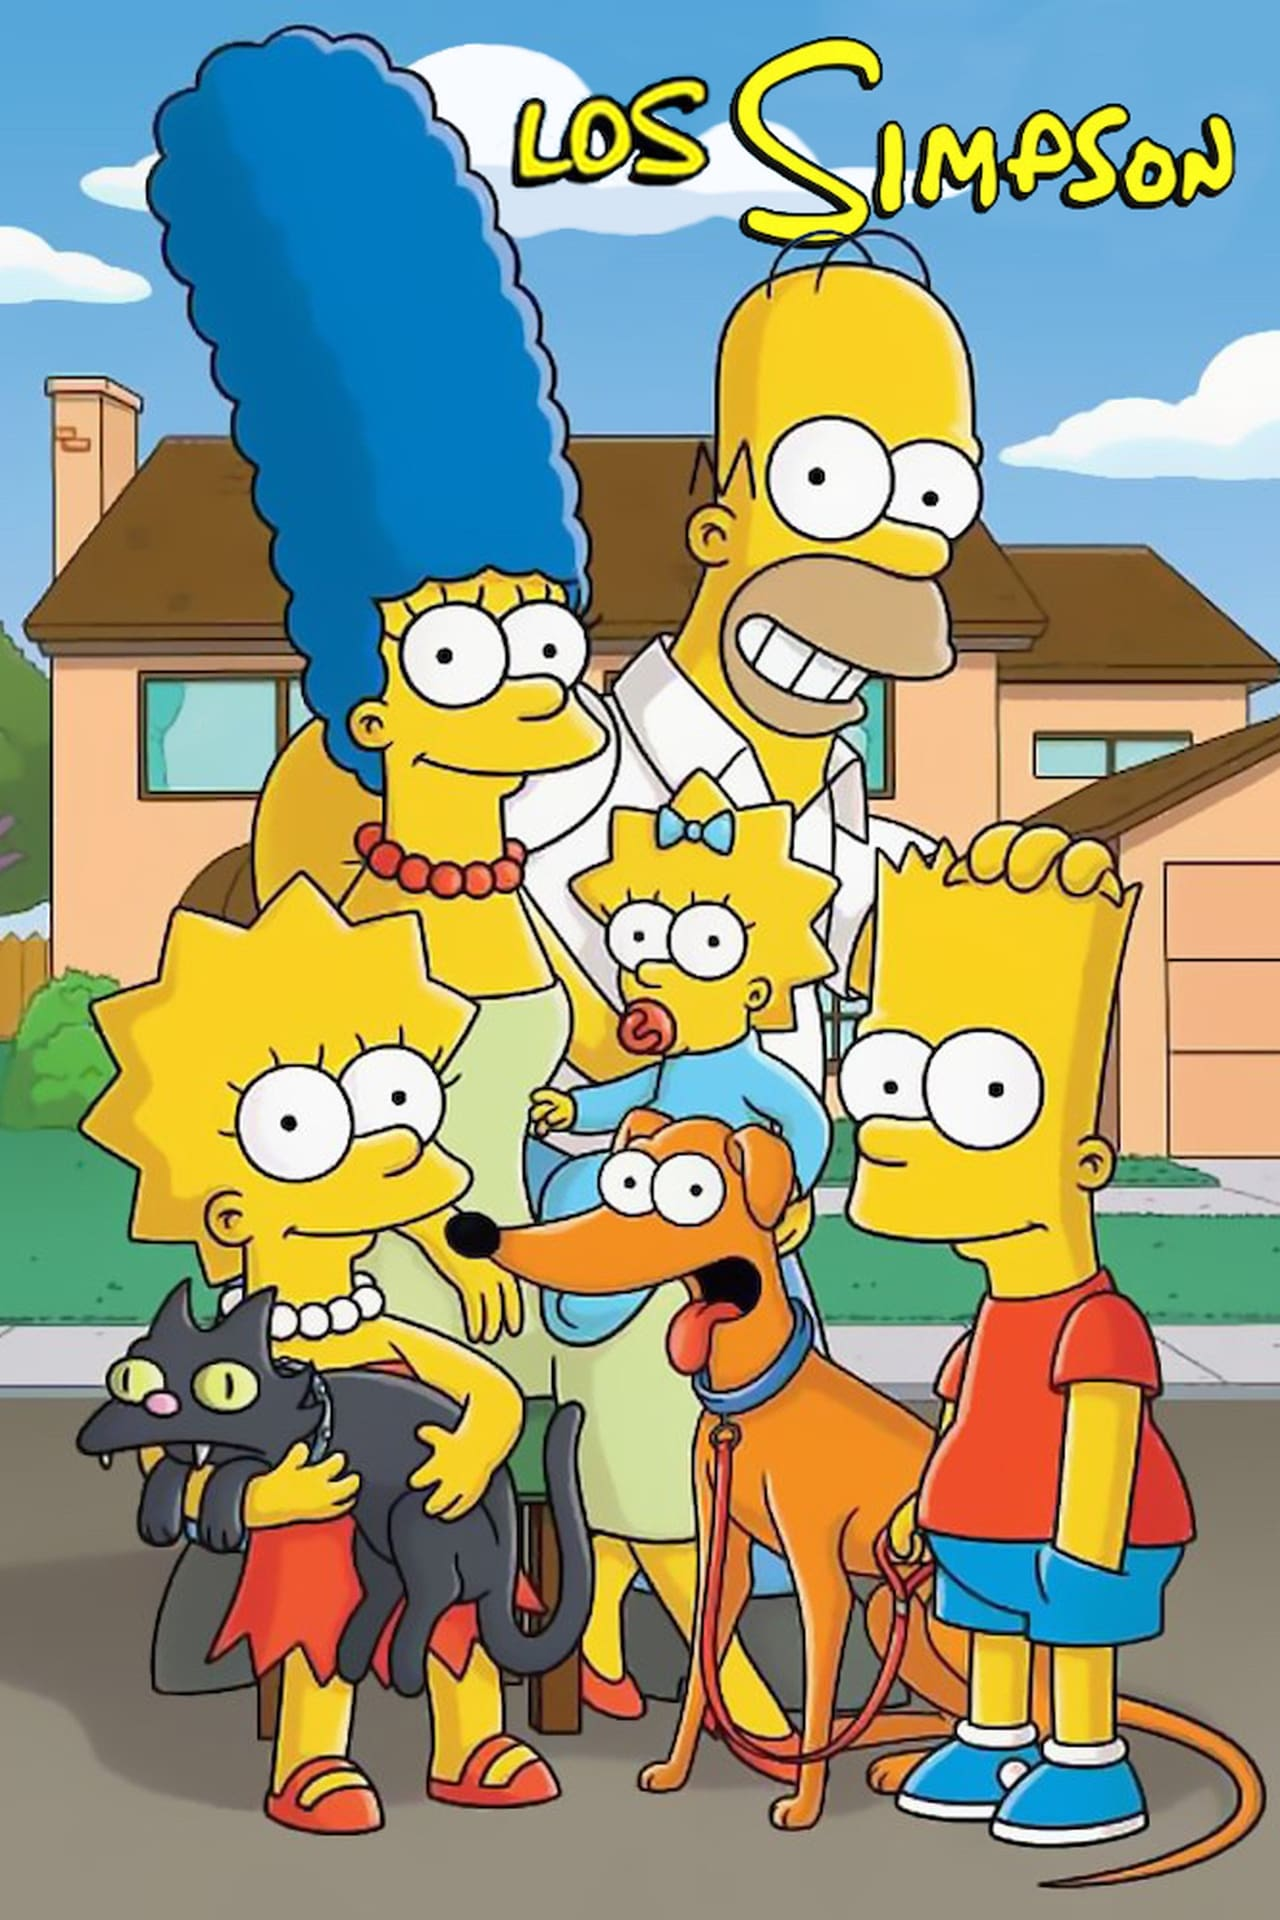 Los Simpson - Season 21 Episode 11 : Million Dolar Homi